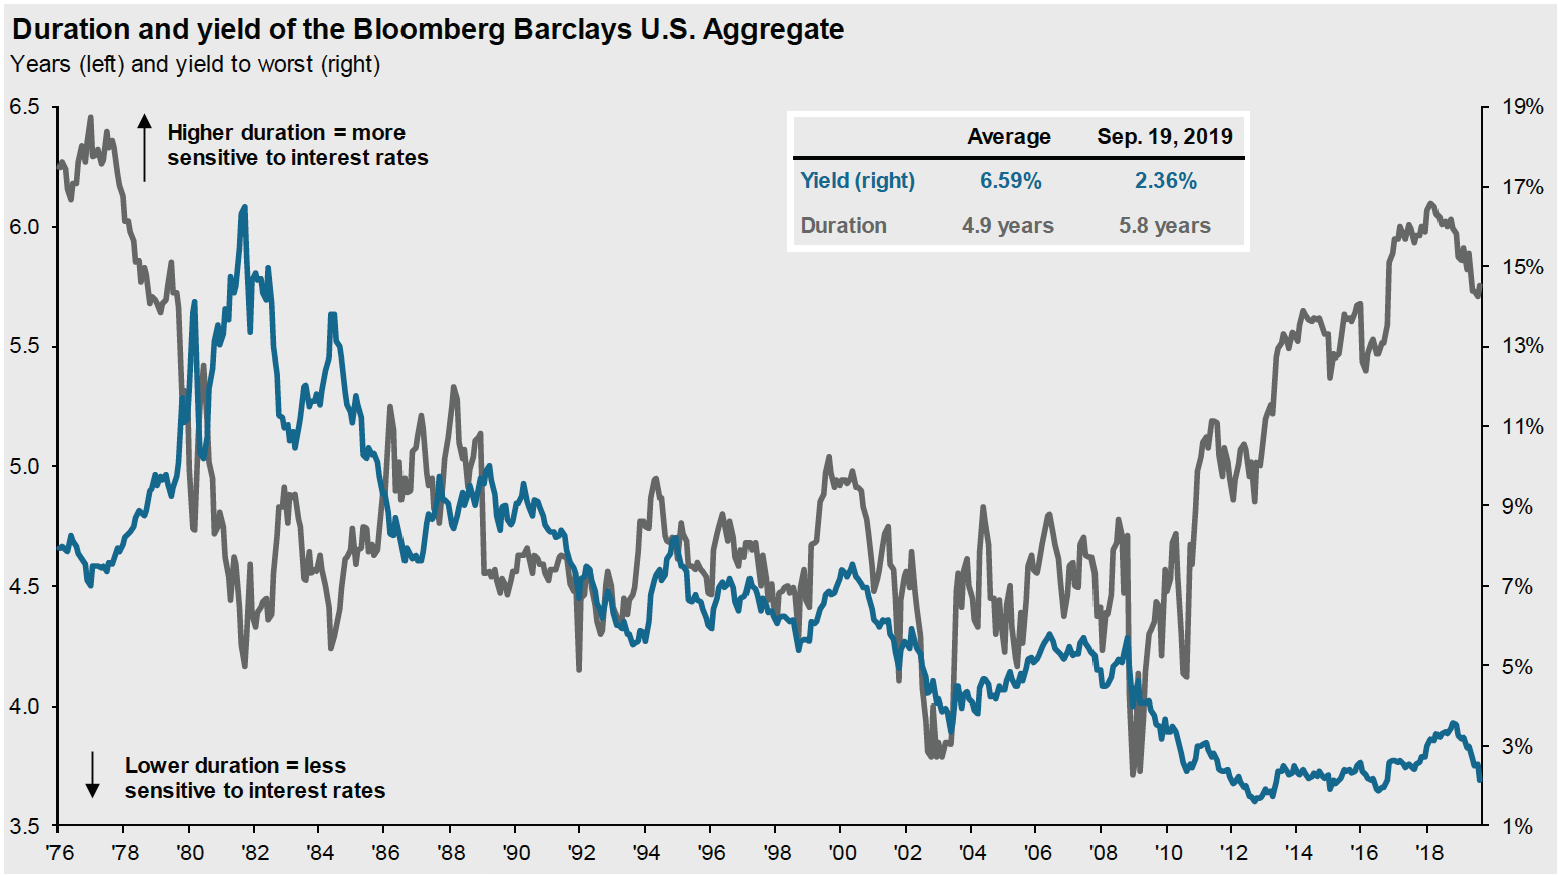 Duration and Yield of Bloomberg Barclays Aggregate